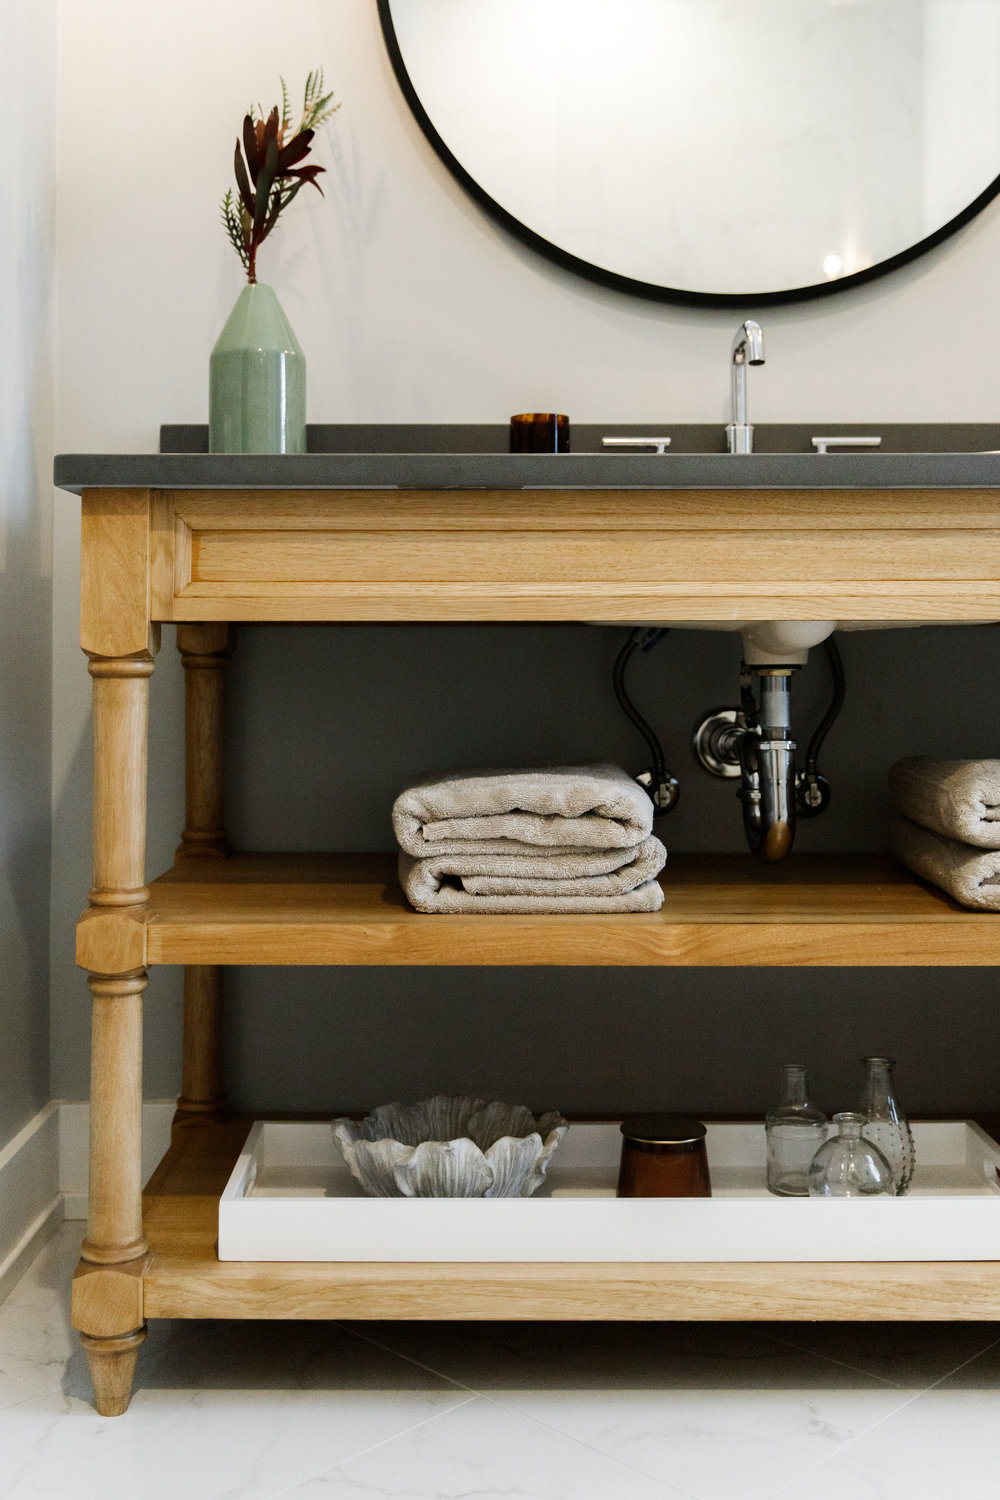 Vanity with open shelves and exposed plumbing with chrome hardware